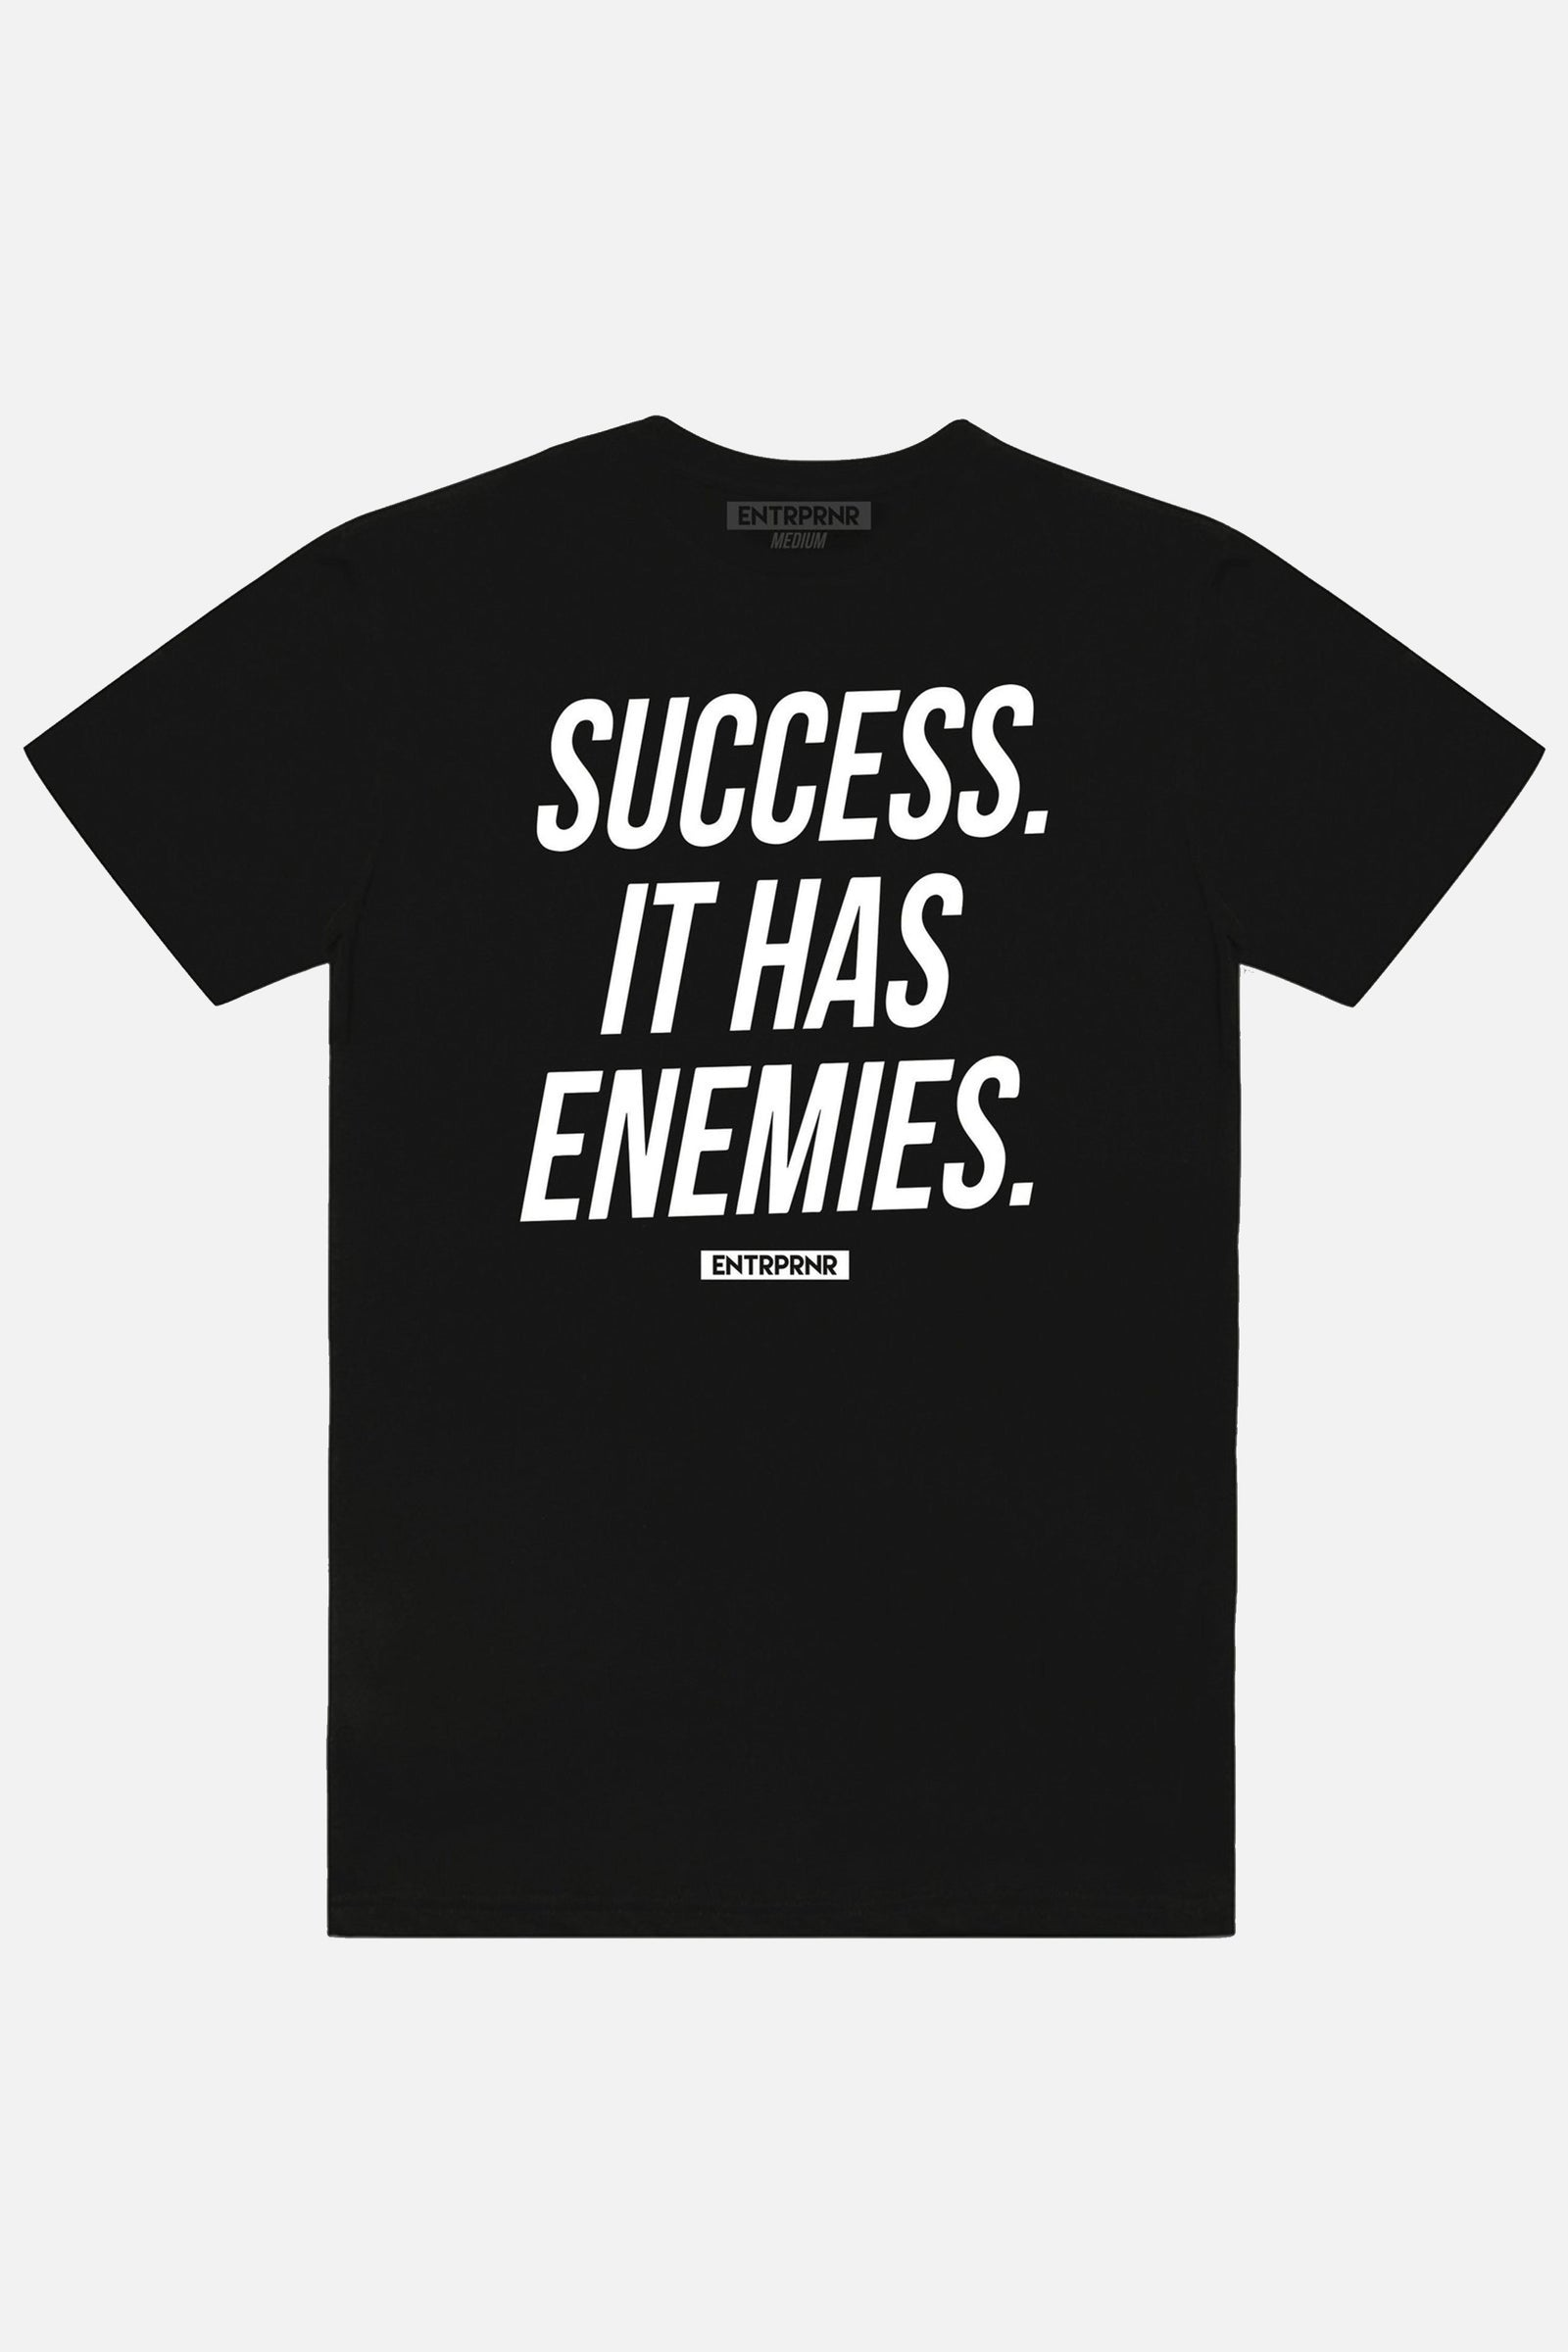 Success Has Enemies ENTRPRNR Tee – Black - ENTRPRNR® | The Entrepreneur's Clothing Brand. | Stagnancy is the Enemy. Action is King.